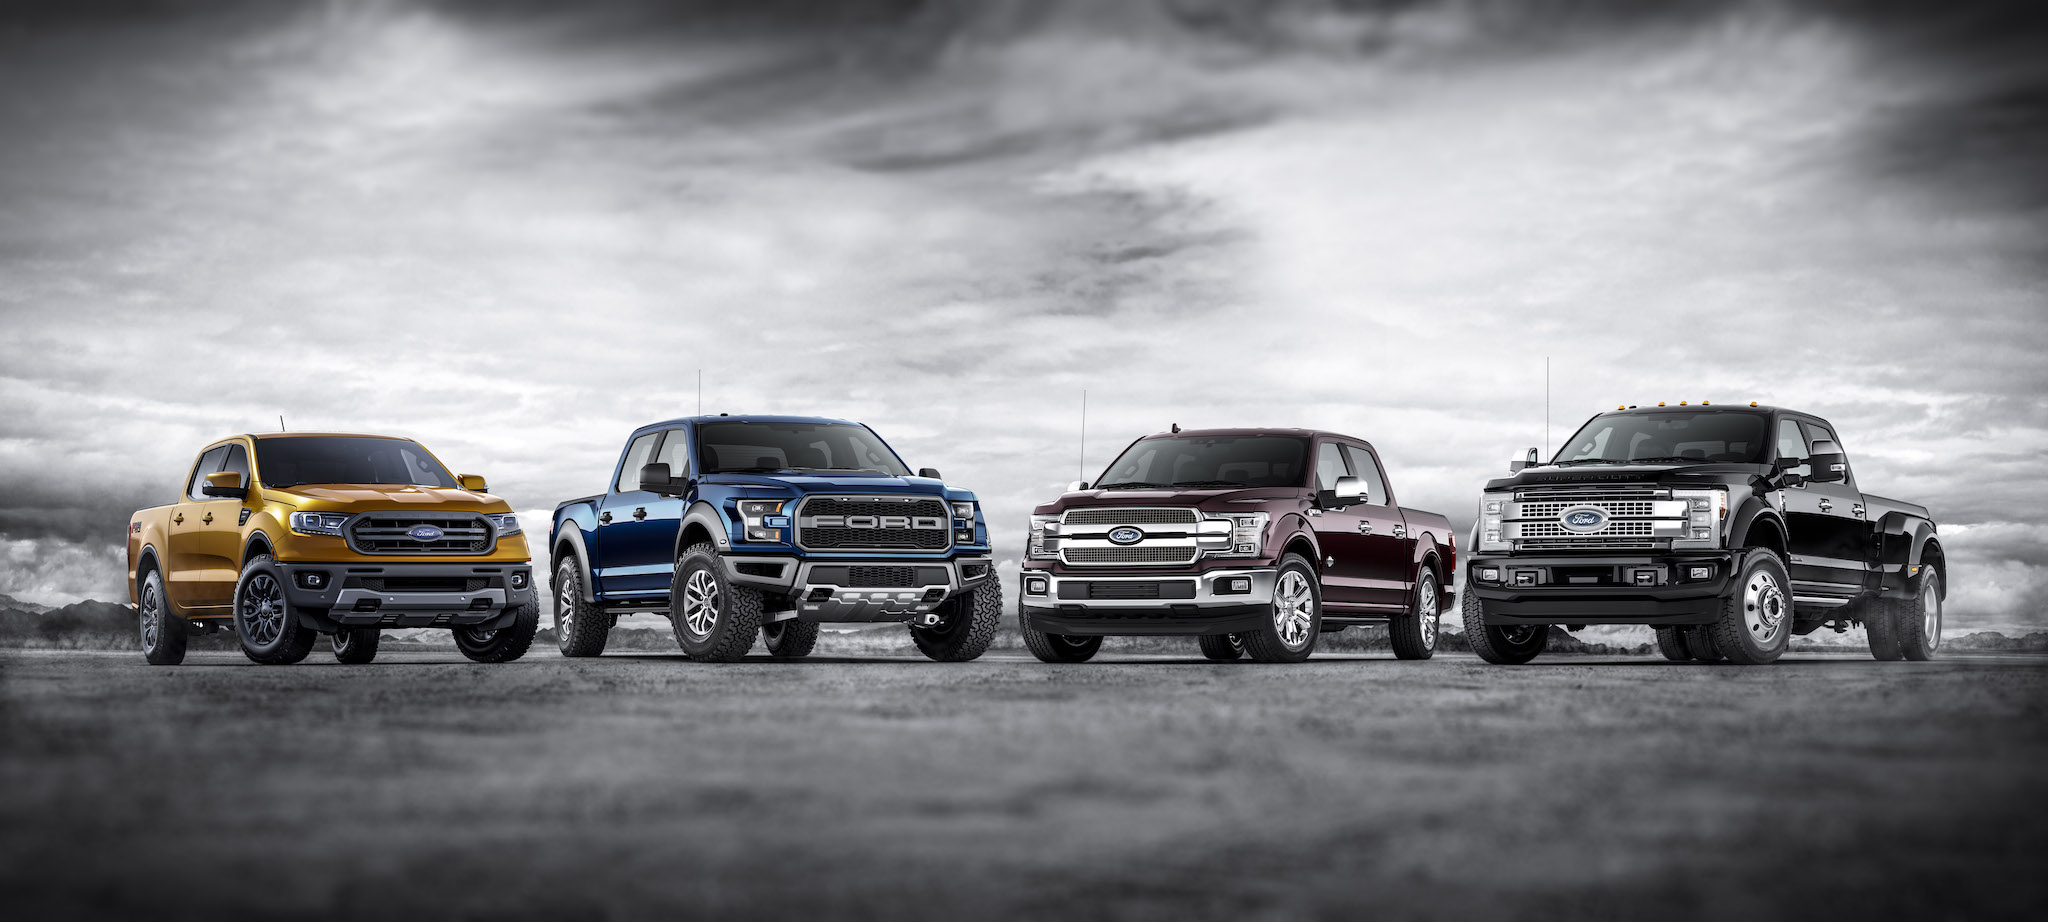 Enlarge fords truck business will continue growing as the company adds new models and powertrains with an eye toward continued growth in high end trims